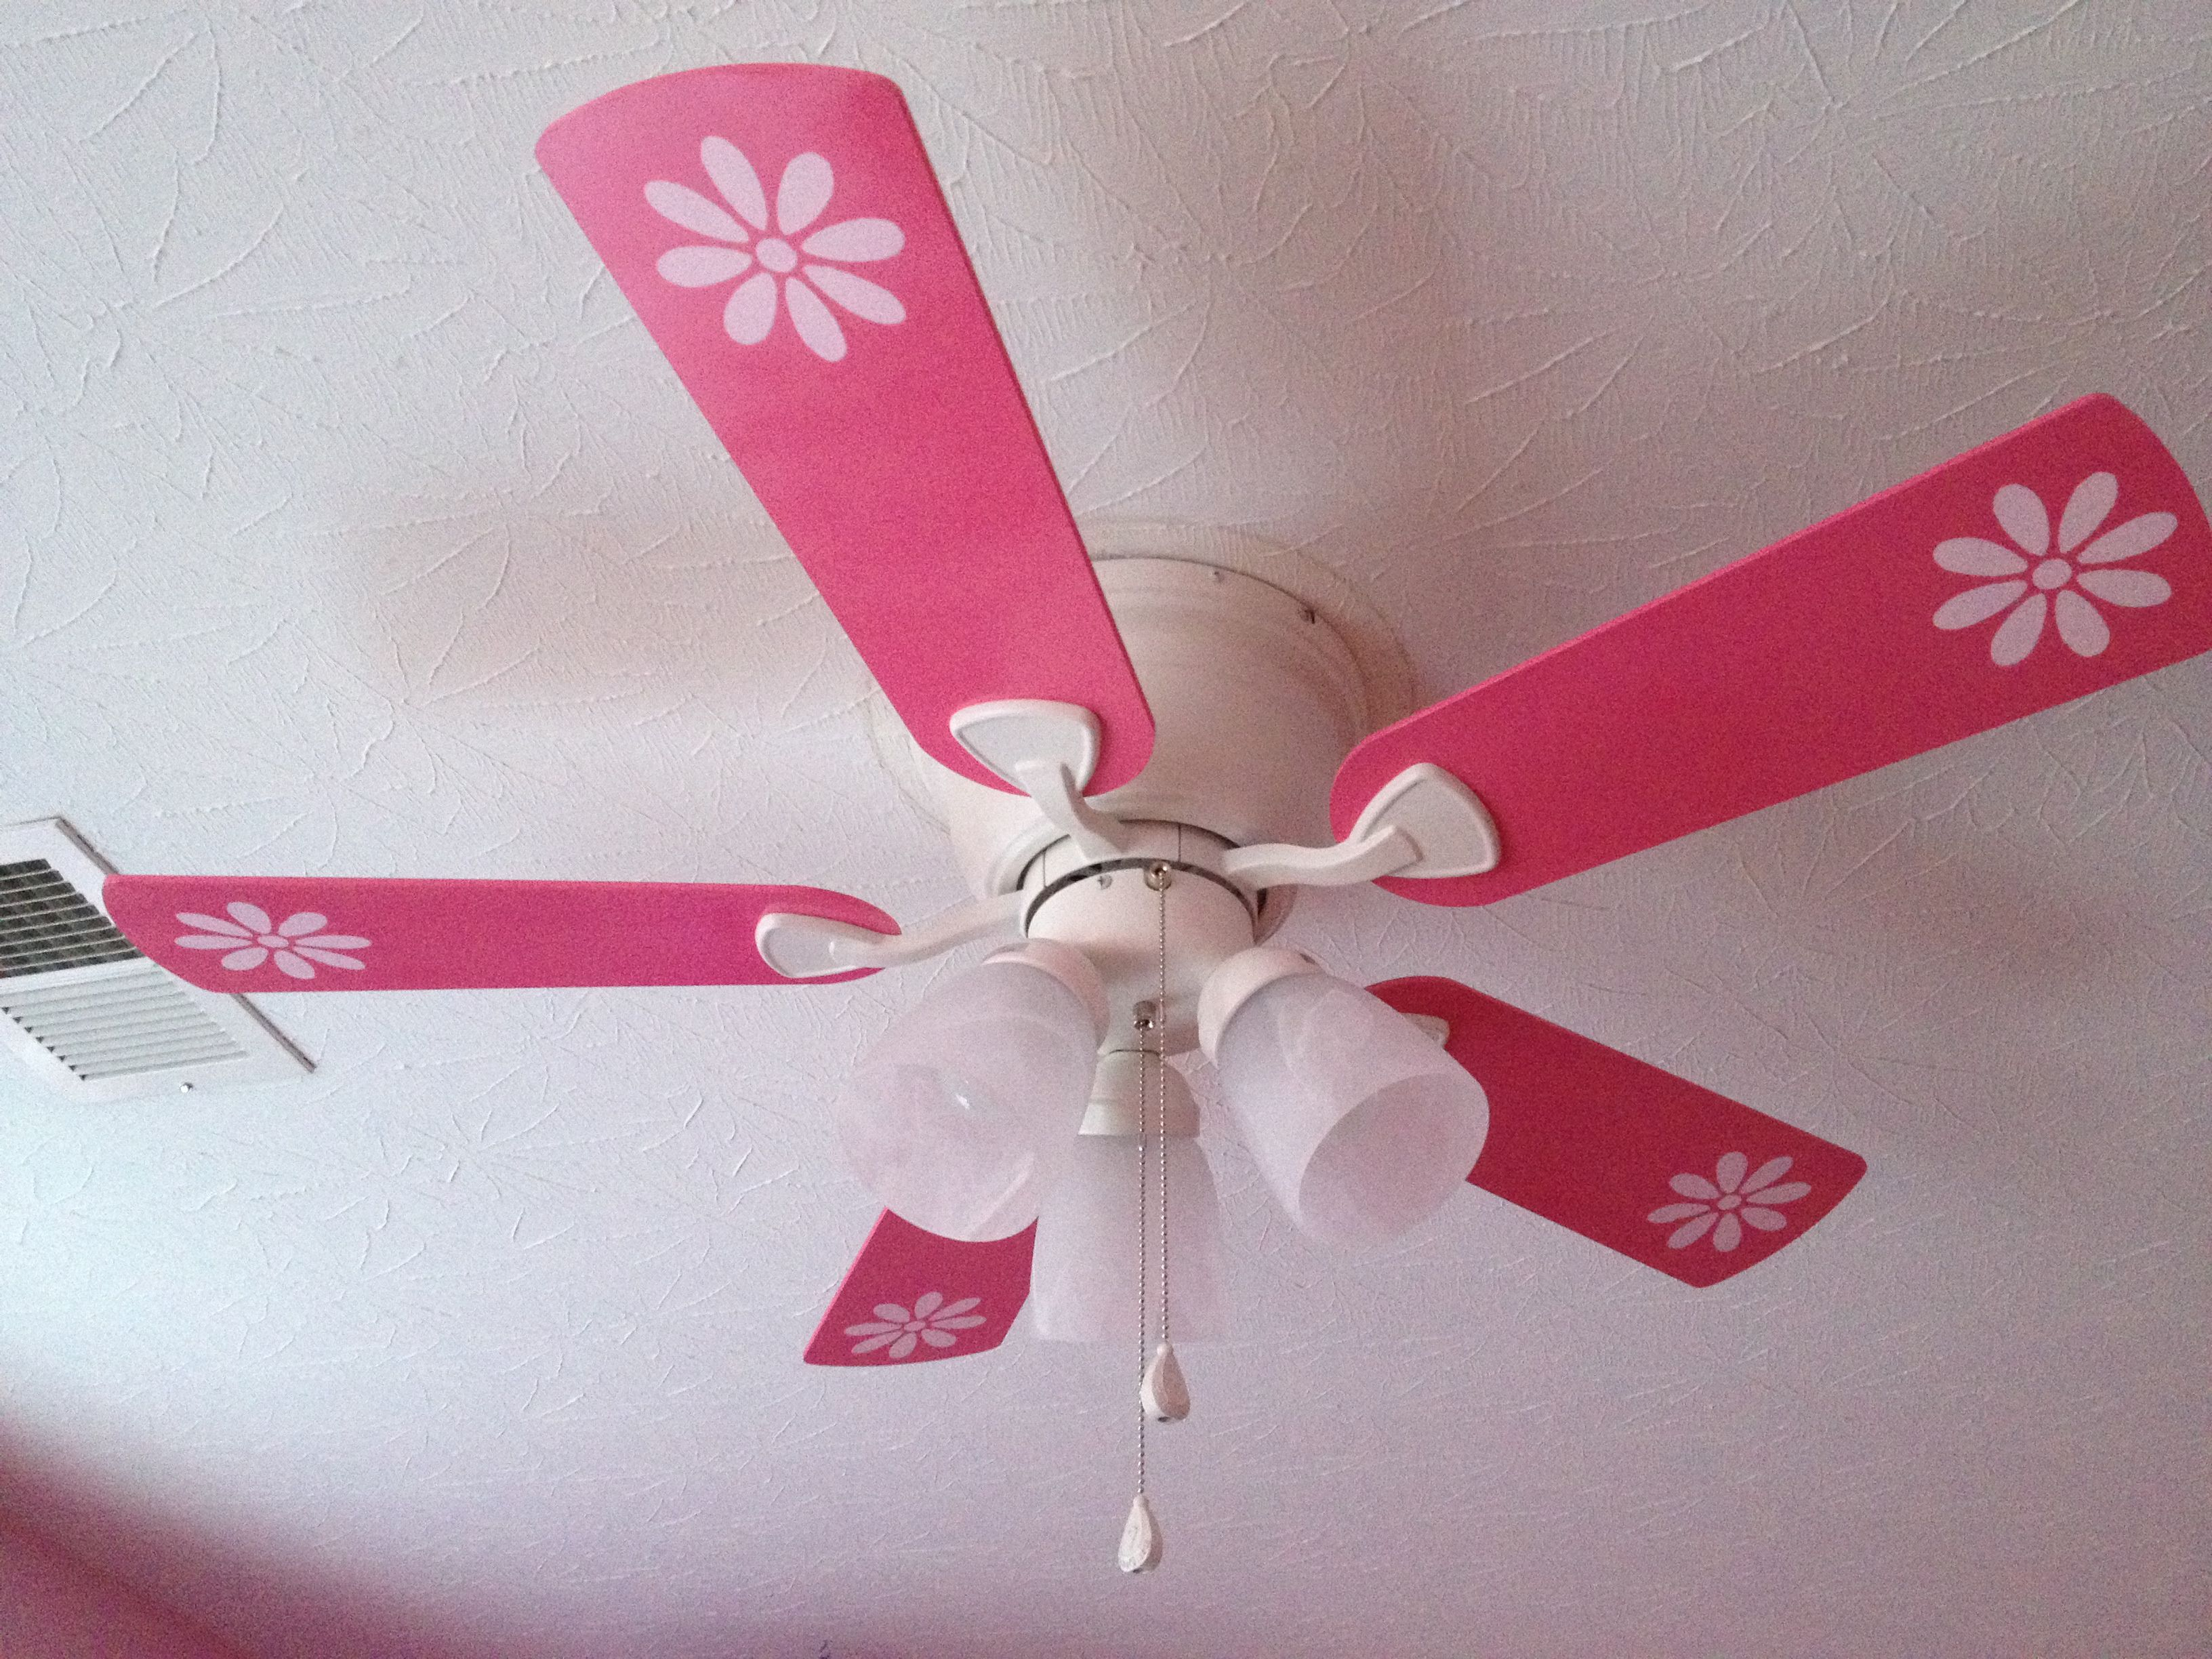 Pin By Brandy On Home Decor Ideas Ceiling Fan Makeover Ceiling Fan Kids Room Wall Color